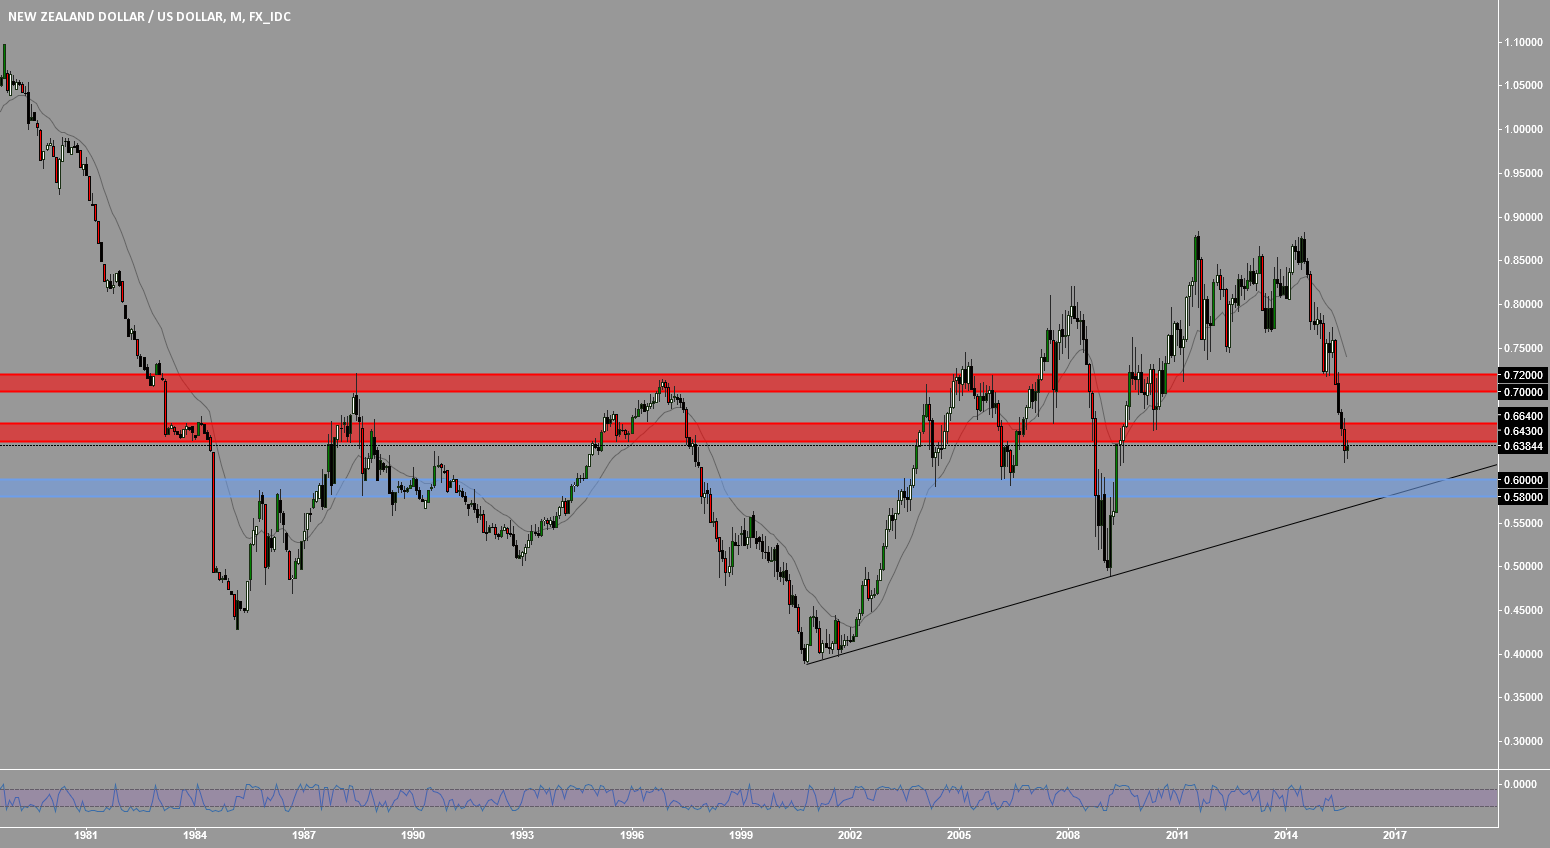 NZDUSD: MY KEY TRADE ZONES